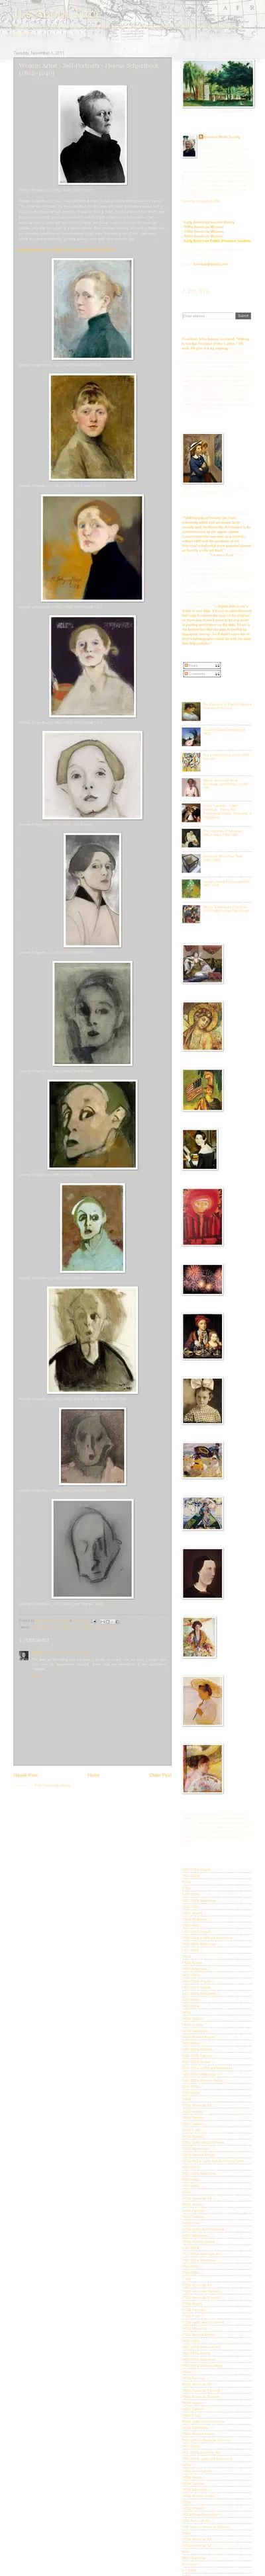 helene schjerfbeck artist - Google Search